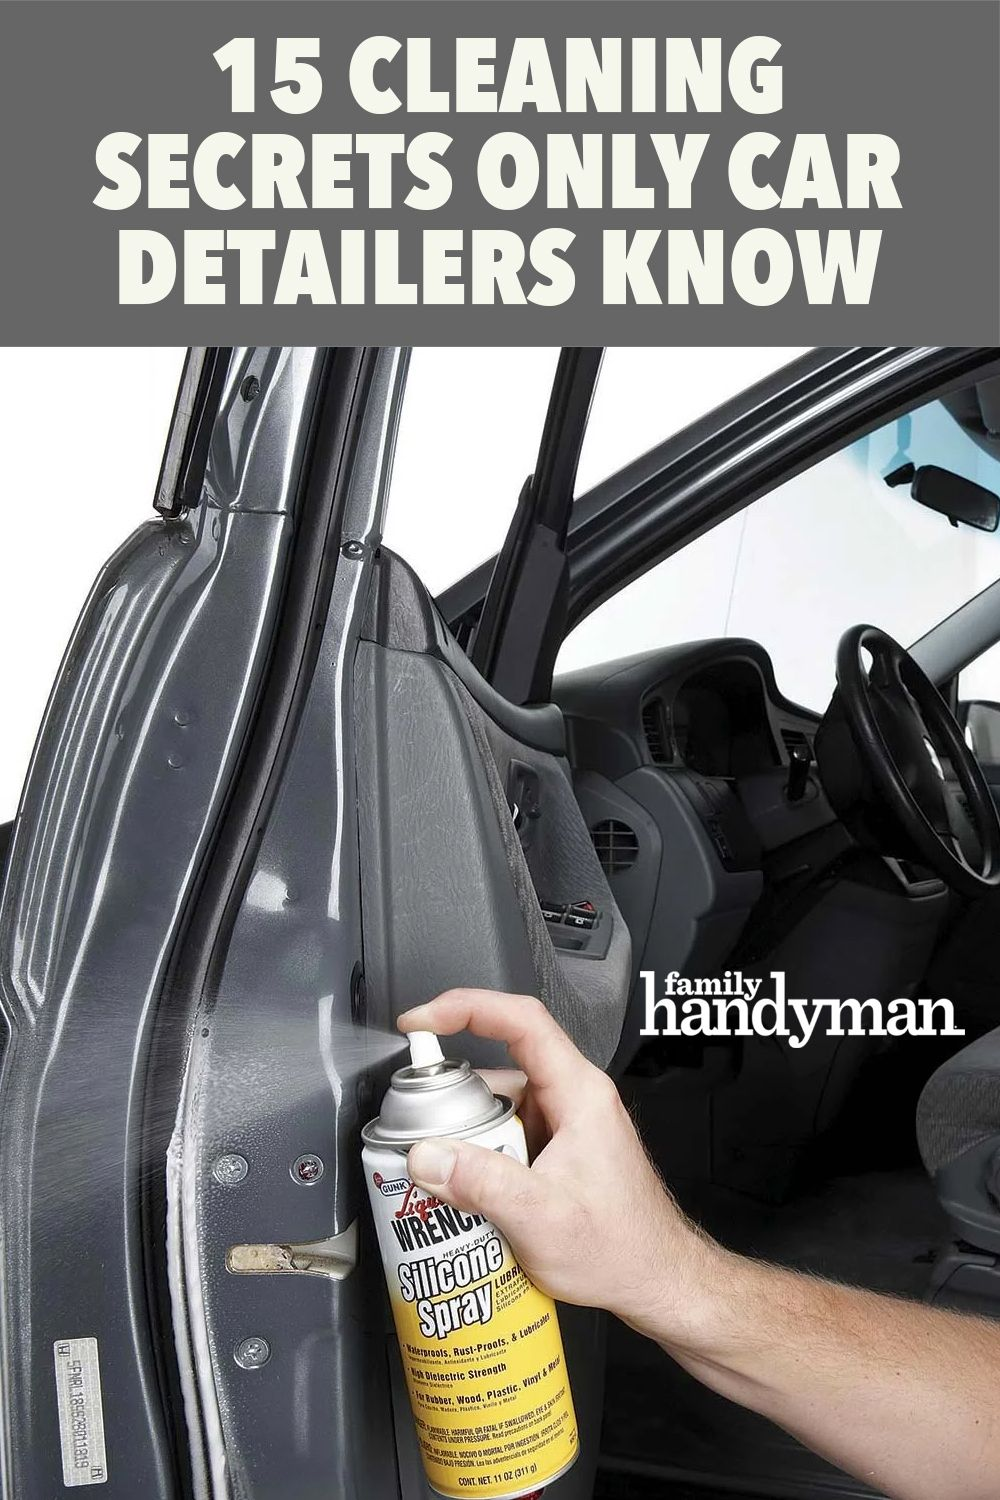 16 Cleaning Secrets Only Car Detailers Know Car Cleaning Hacks Car Cleaning Cleaning Hacks